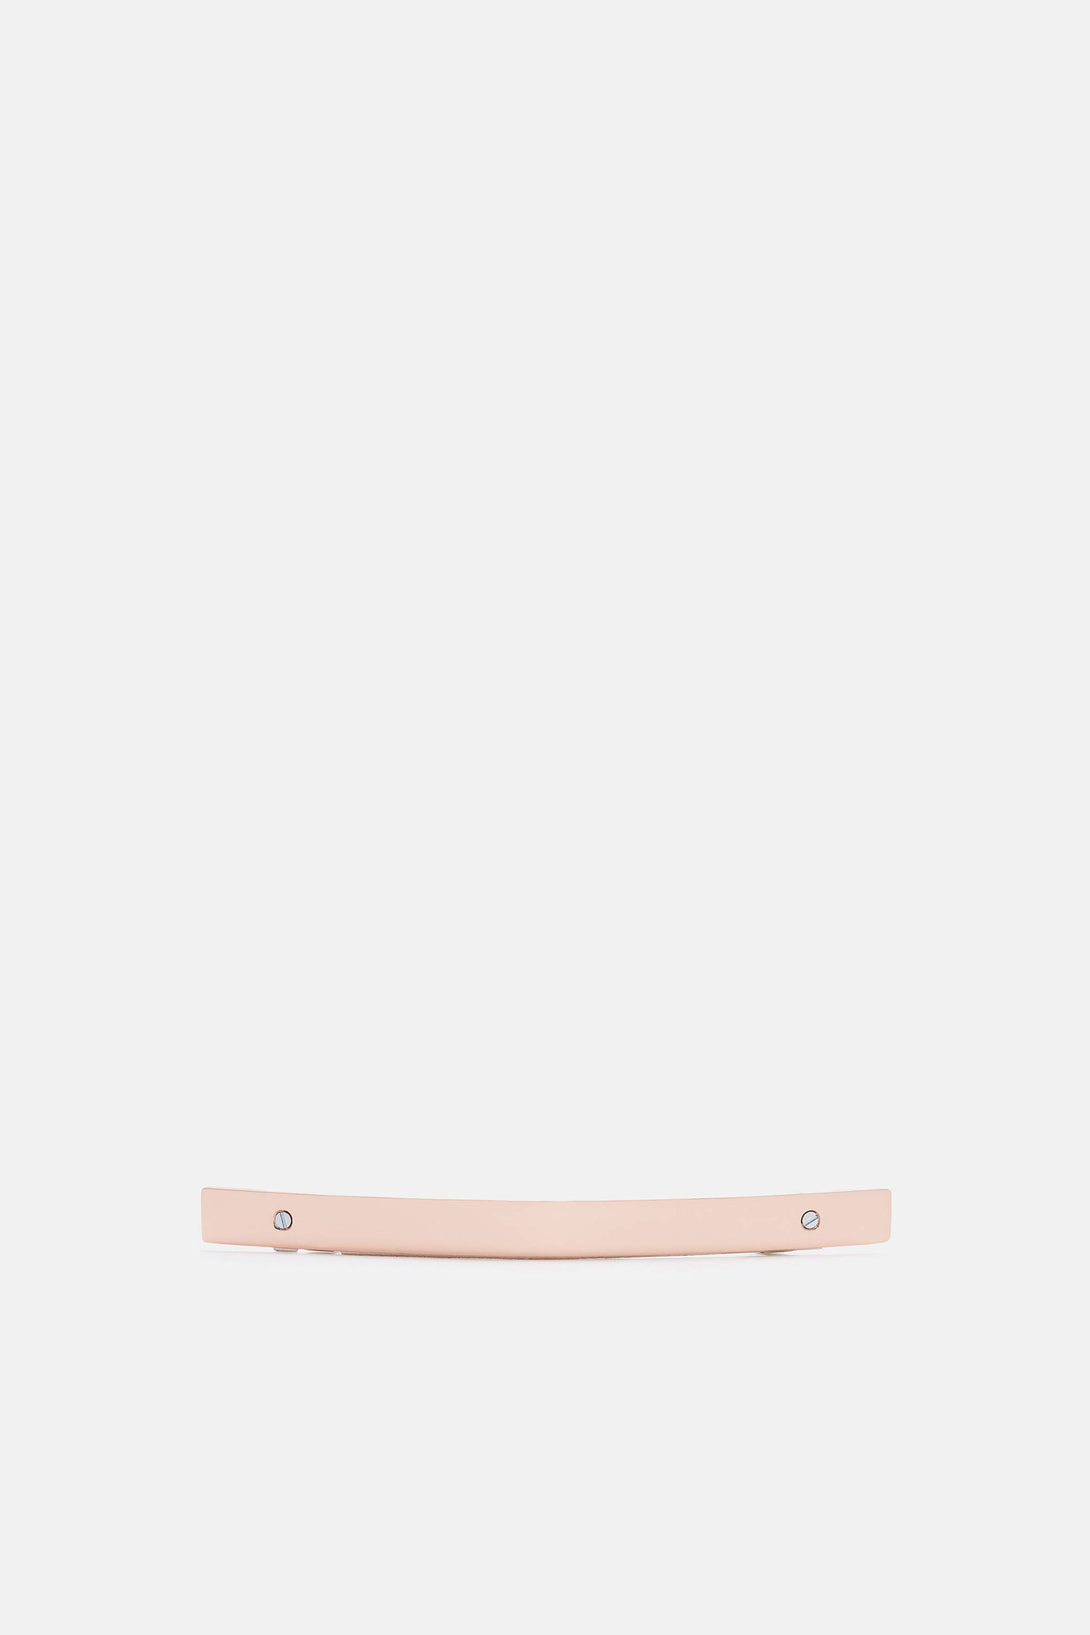 Barrette XL - Pink Gold